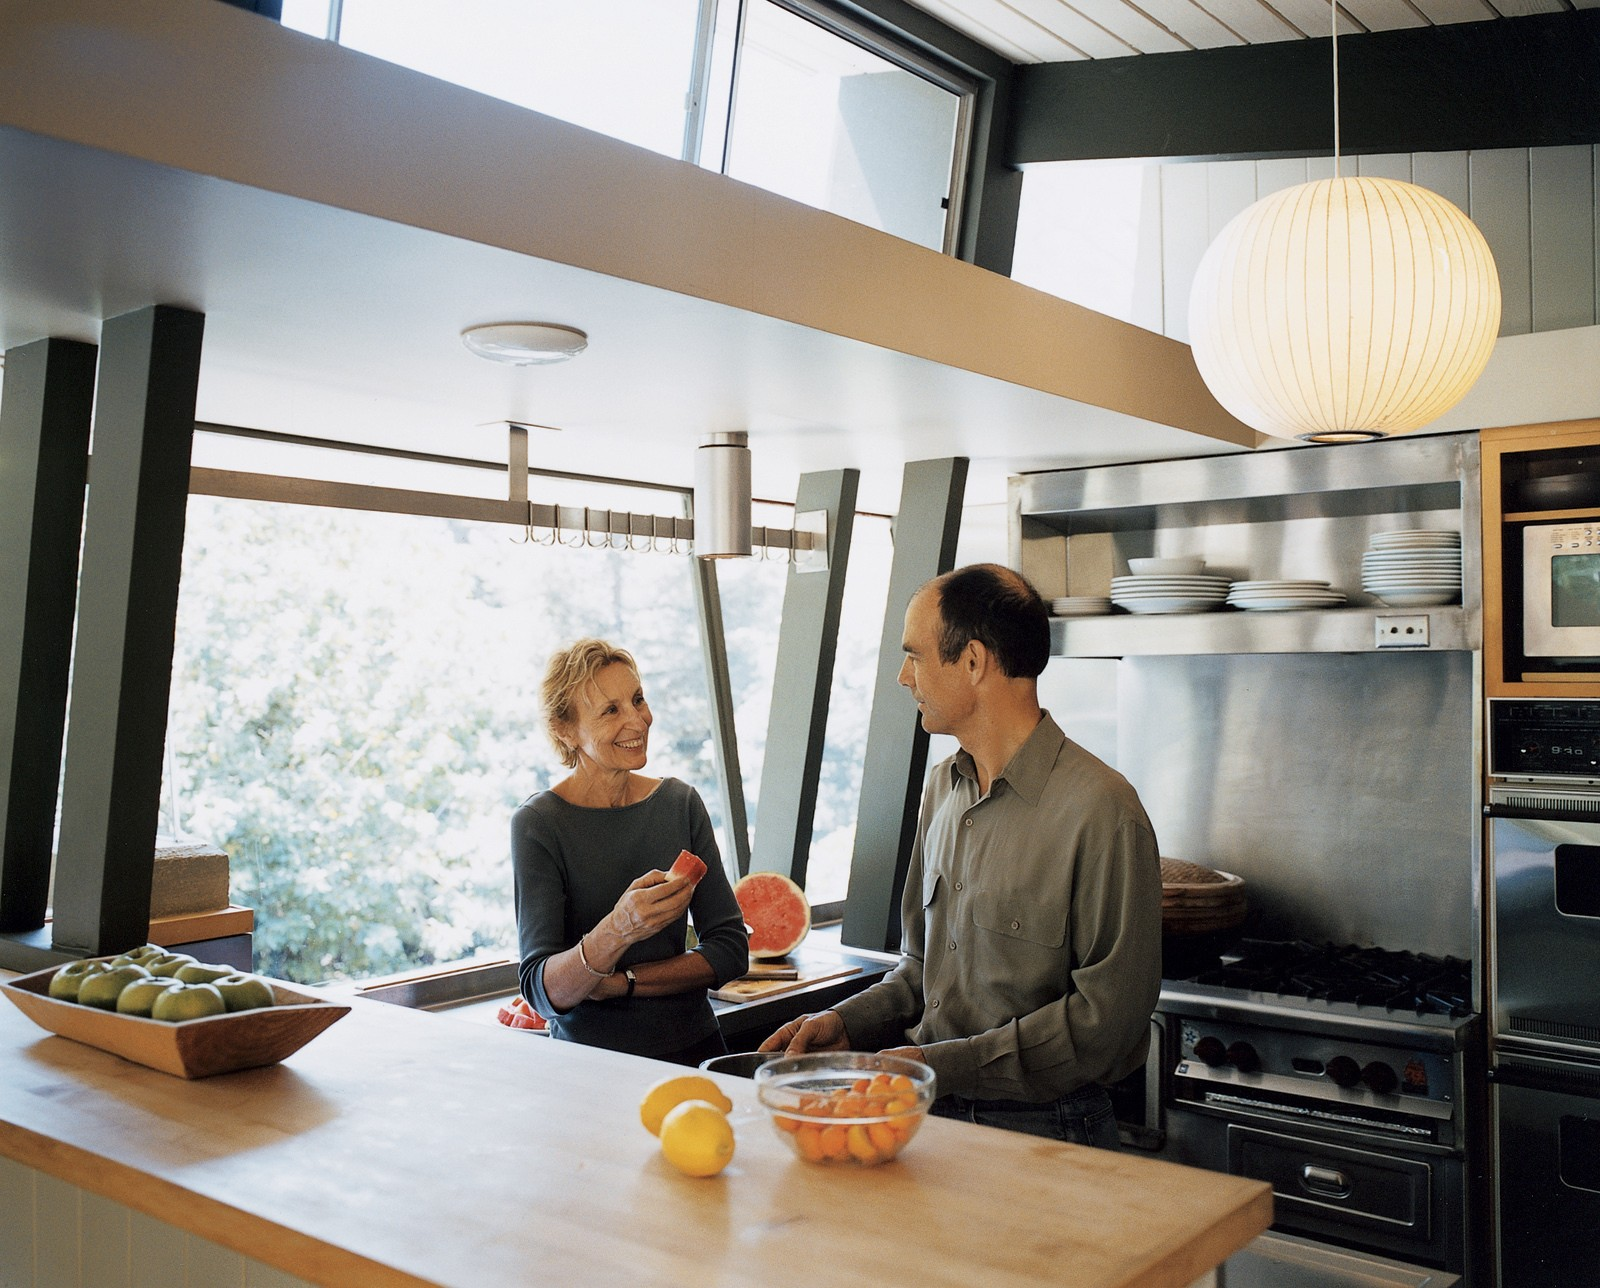 Articles about 10 light filled kitchens on Dwell.com - Dwell